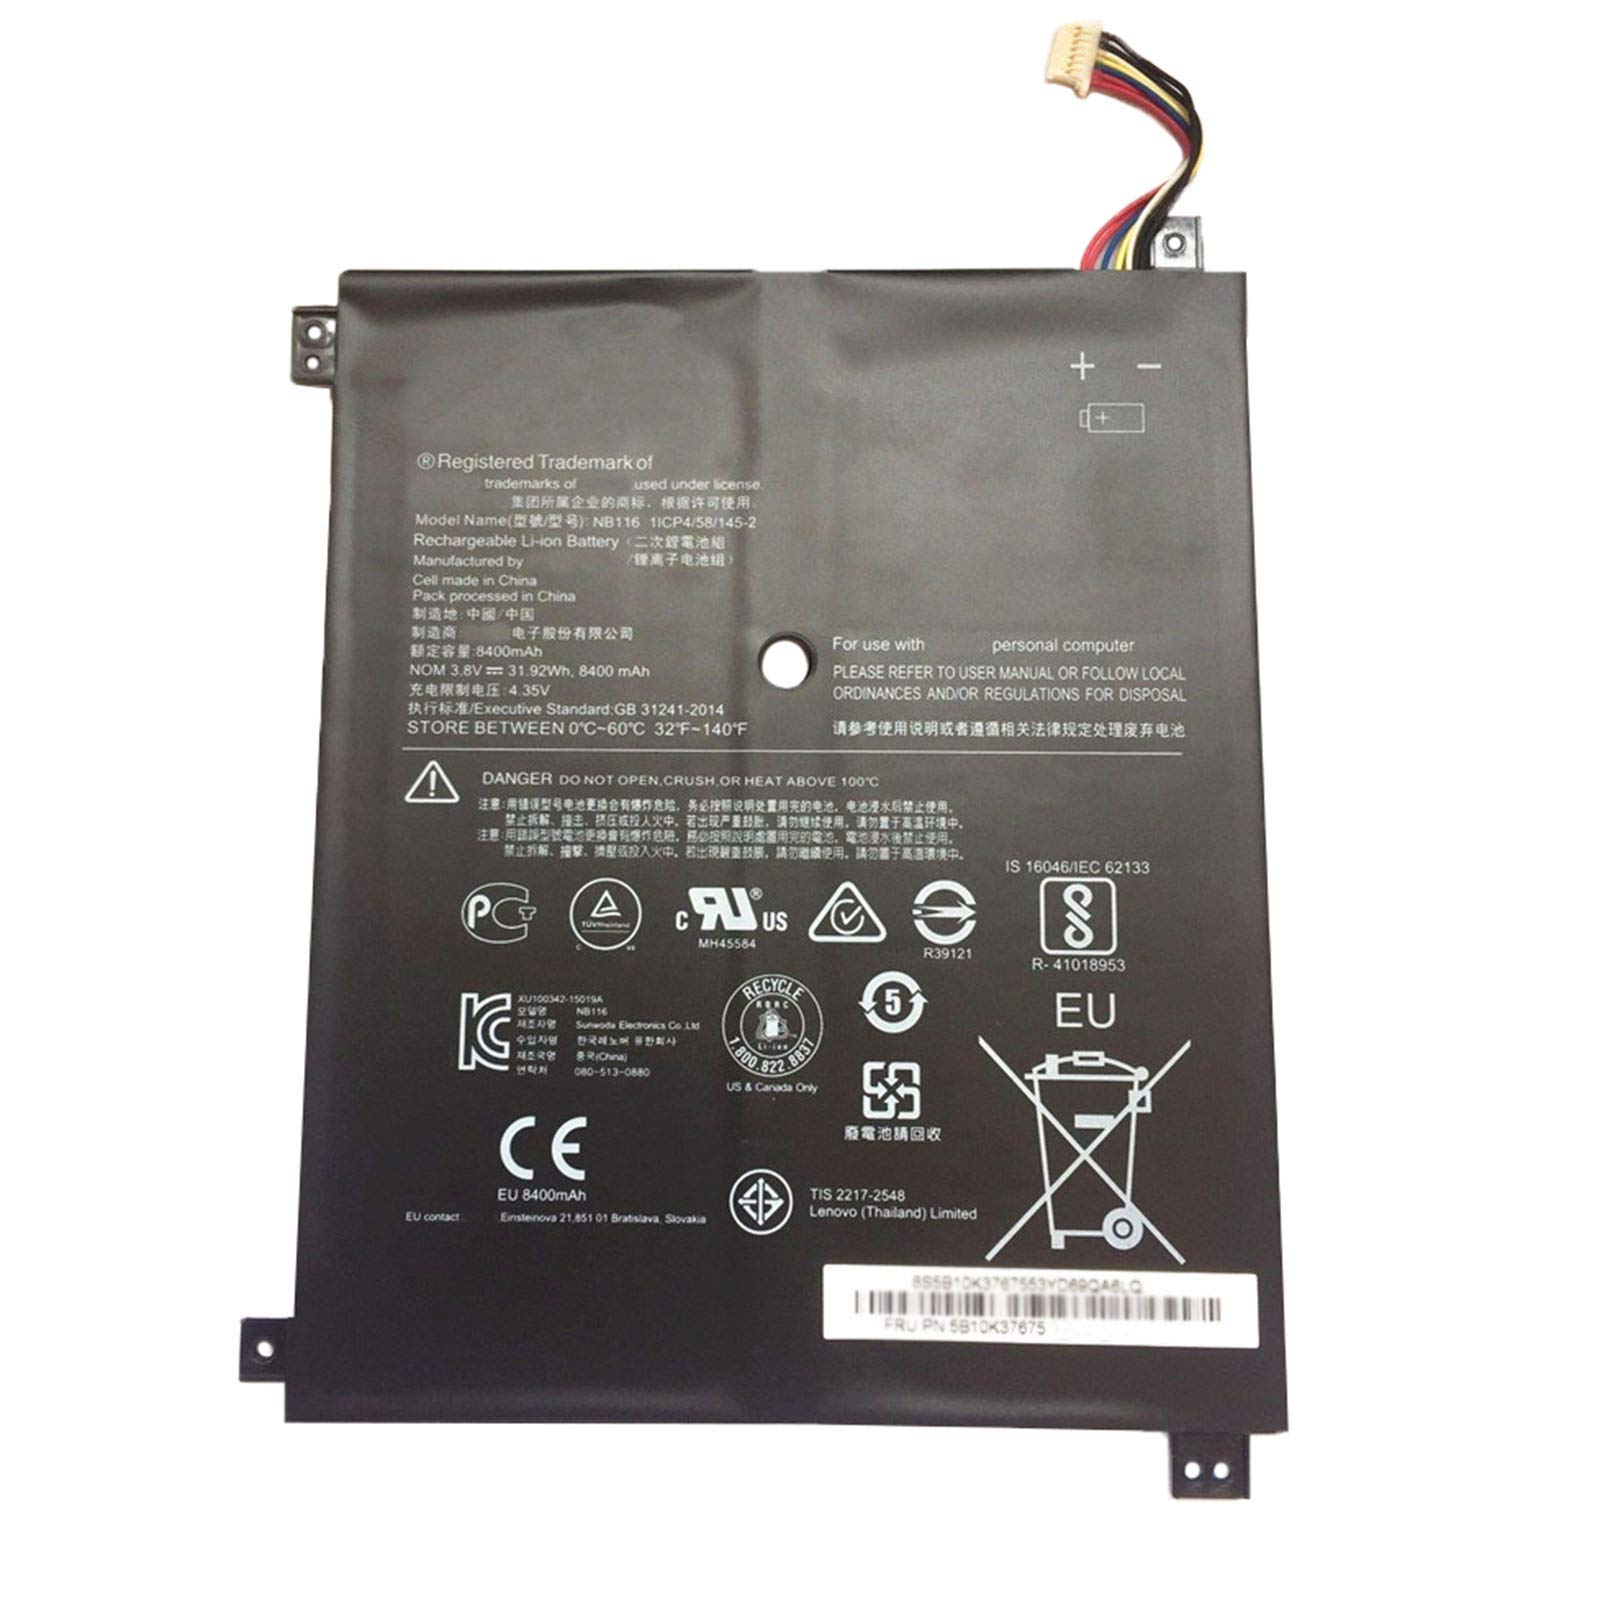 Dentsing 3.8V 31.92Wh/8400mAh NB116 Laptop Battery Compatible with Lenovo IdeaPad 100S 100S-80 R2 100S-11IBY 80R2 Series Tablet 0813001 5B10K37675